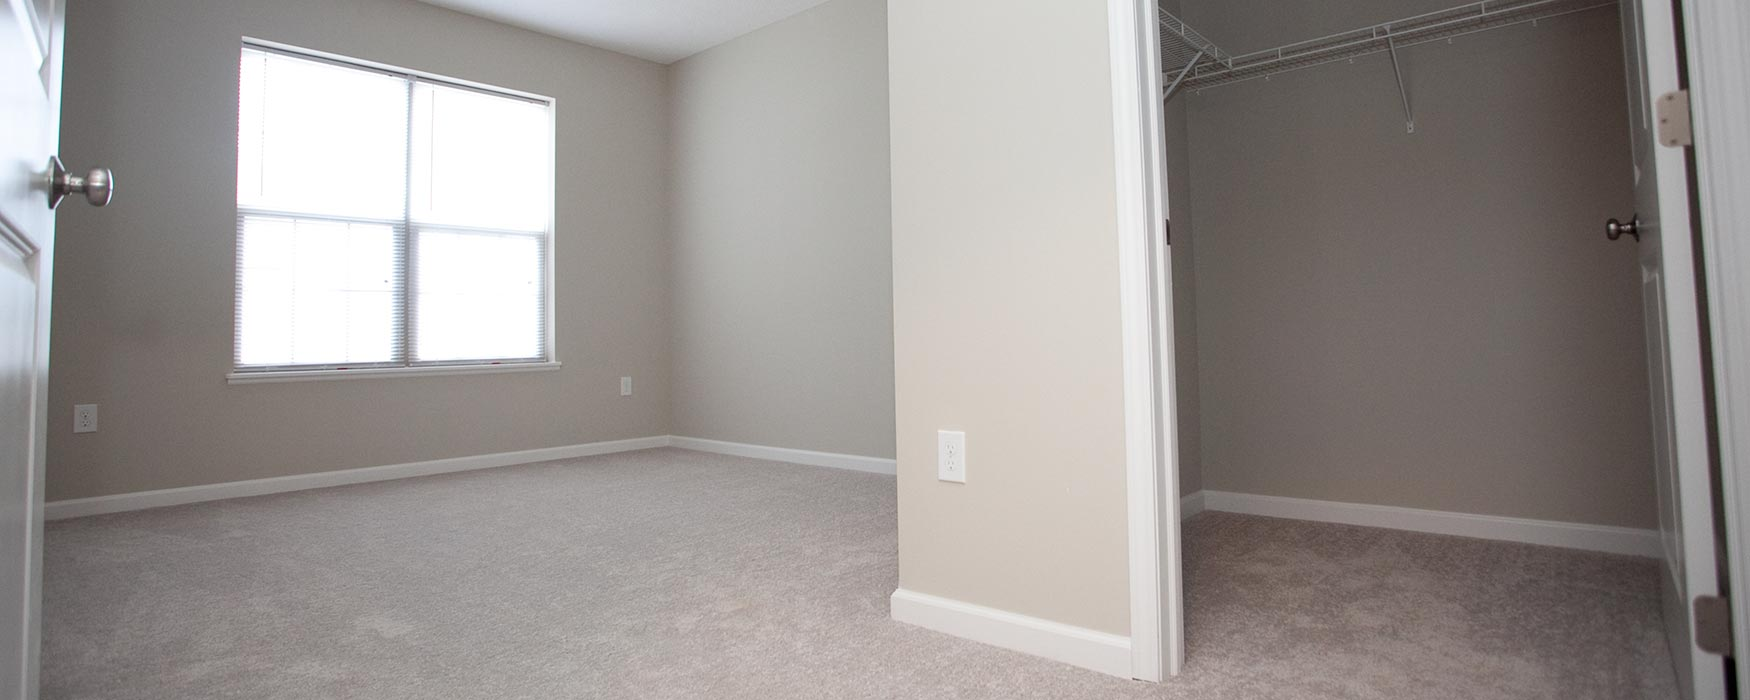 LC Preserve Crossing | Gahanna Apartments | Greystone II Bedroom